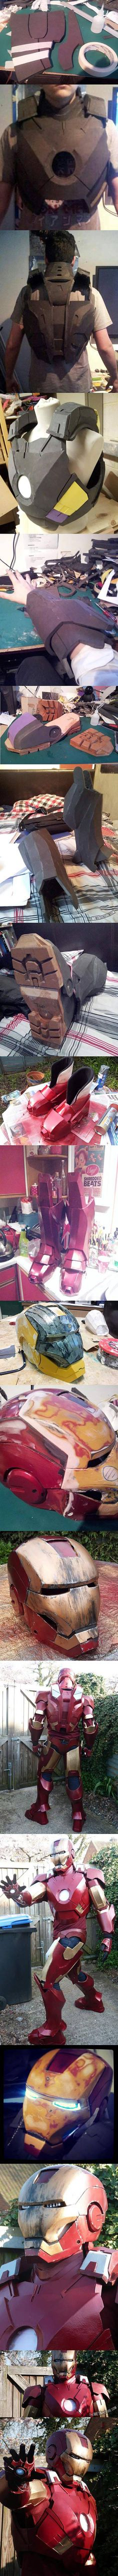 This incredible Iron Man suit was made entirely with foam.